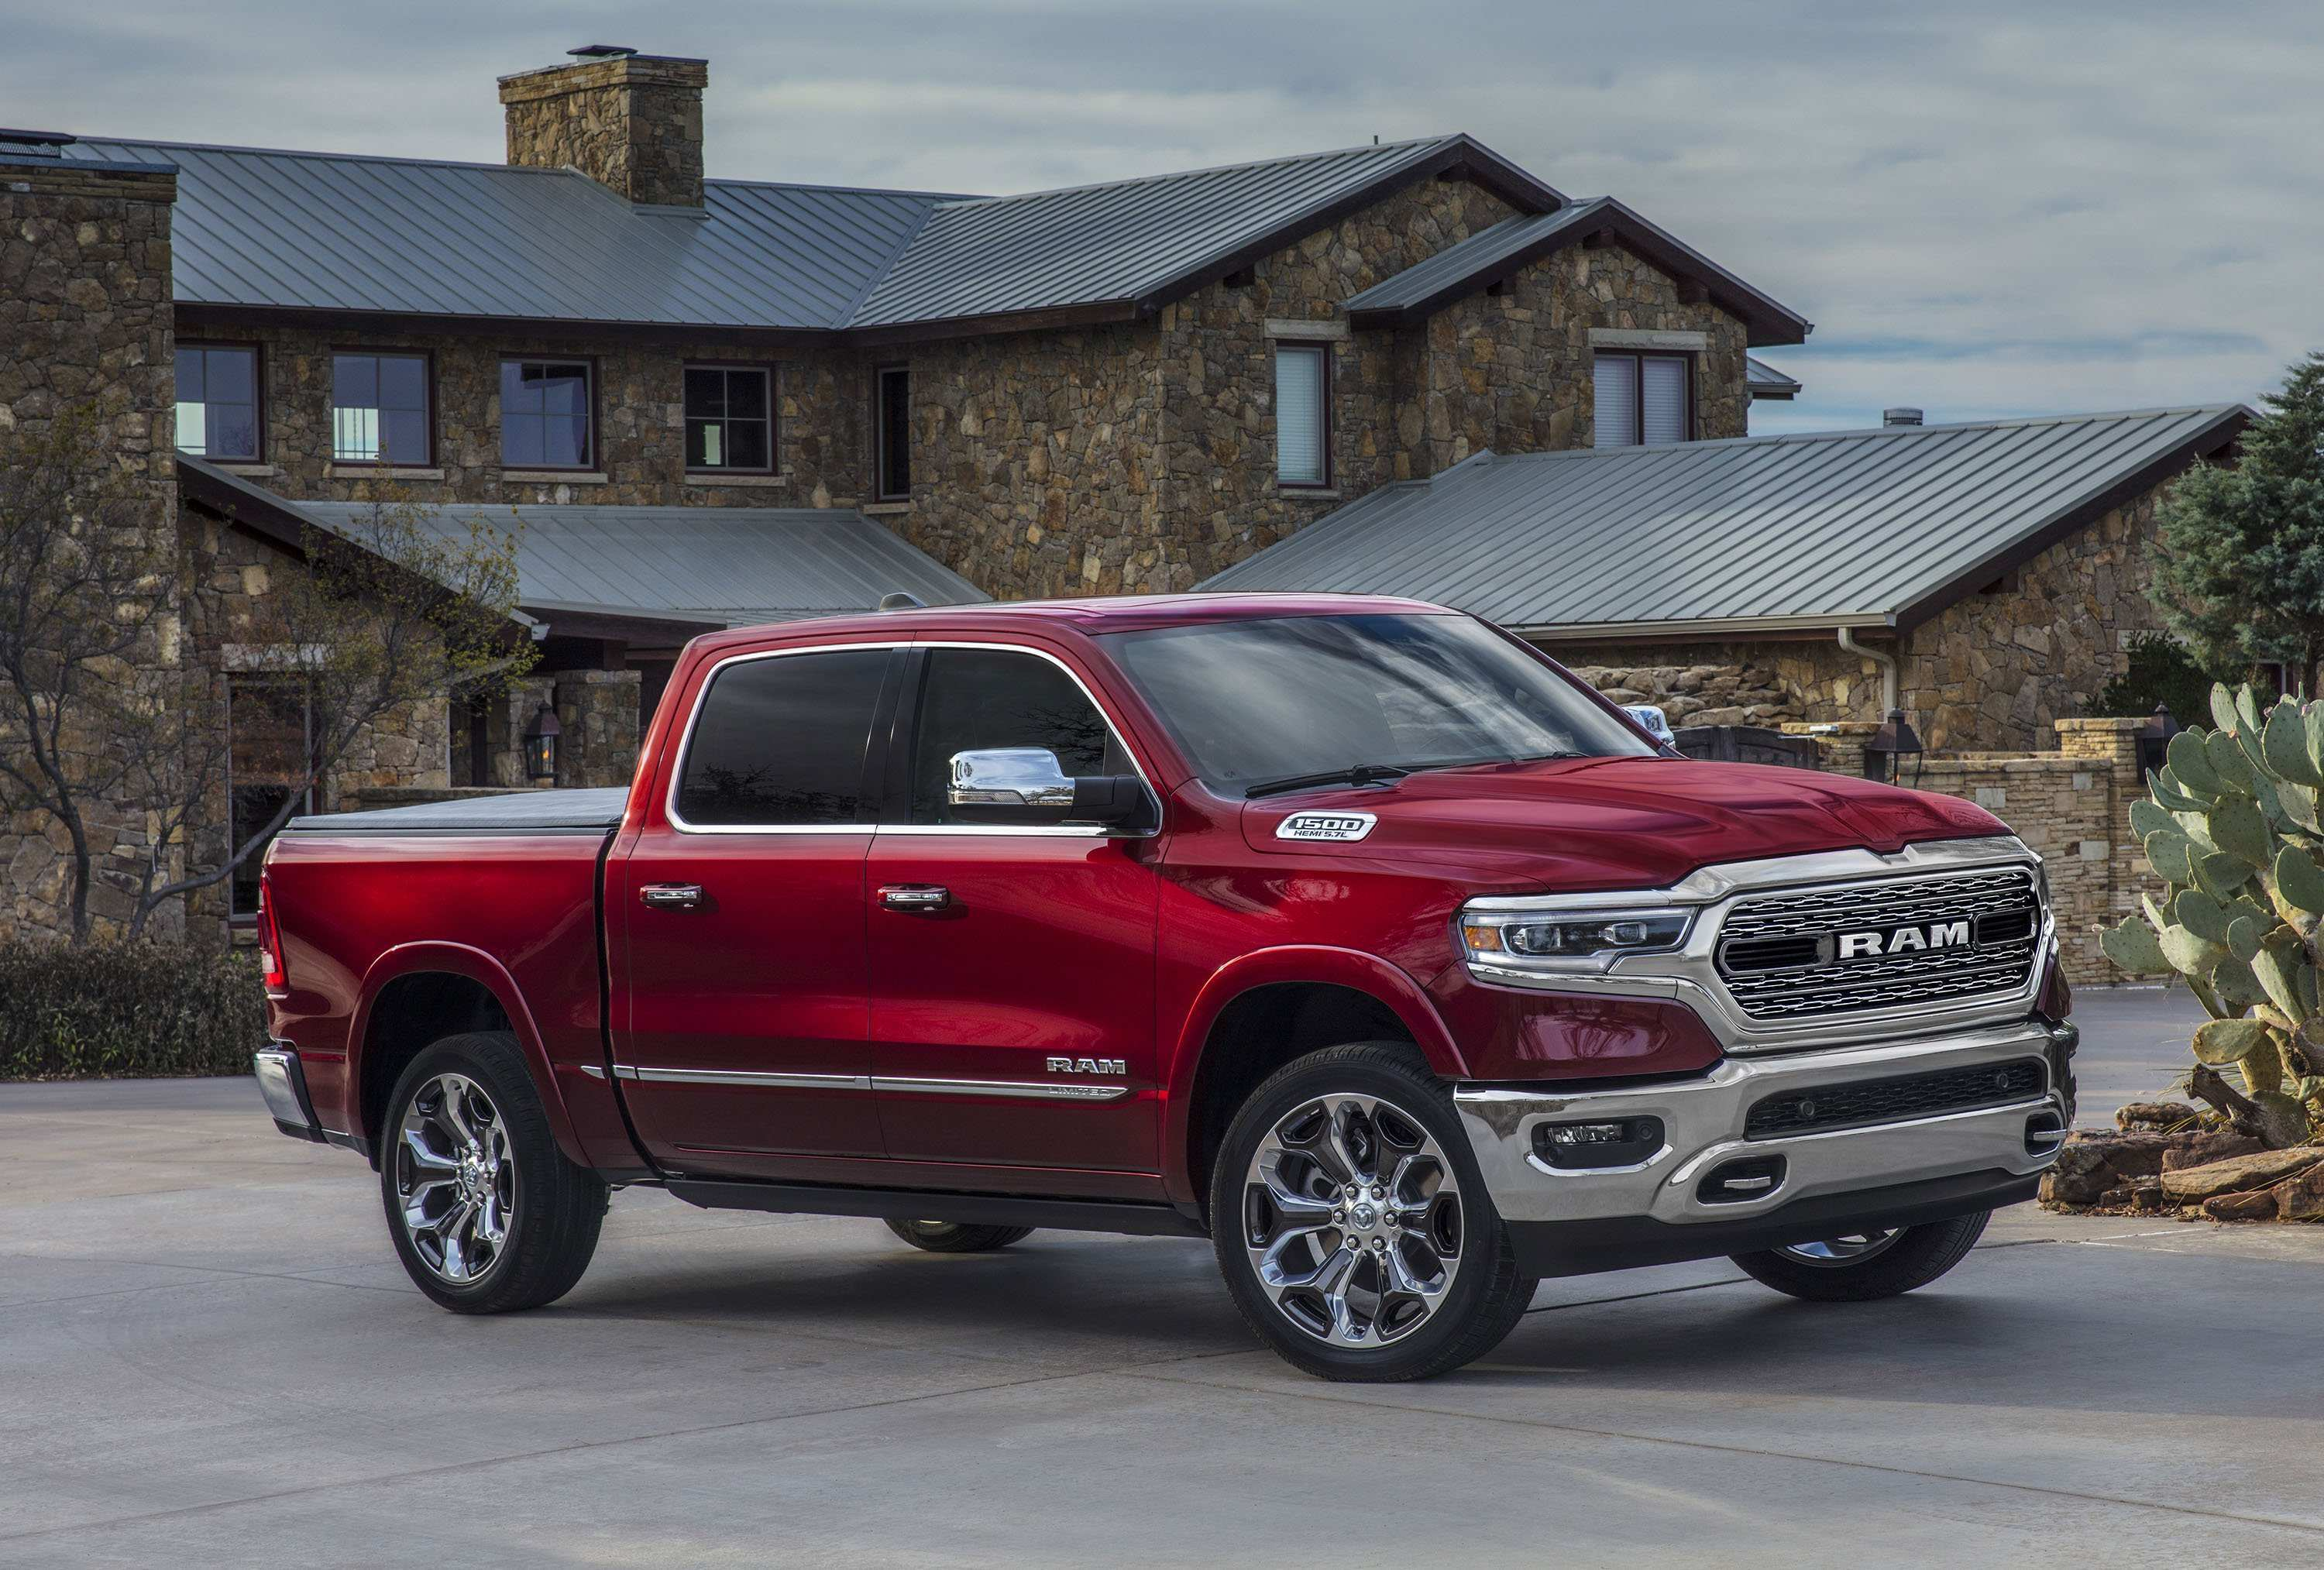 44 New 2020 Dodge Ram Pickup Research New